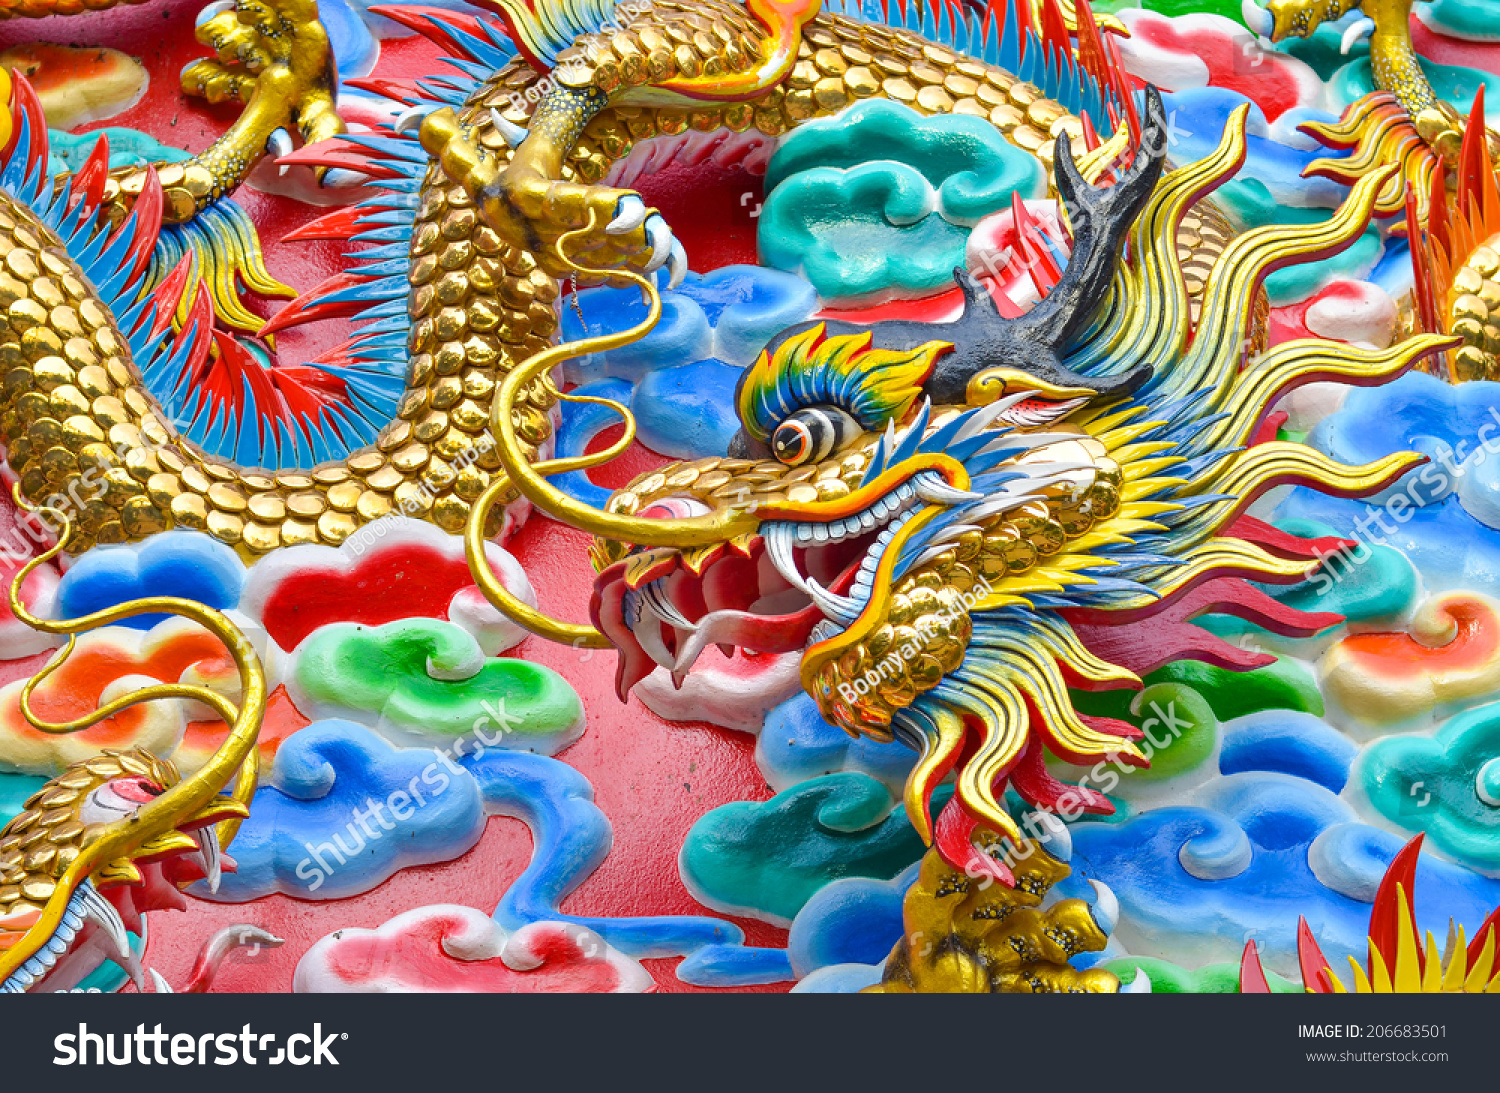 Dragon symbol power stock photo 206683501 shutterstock the dragon is the symbol of power biocorpaavc Image collections